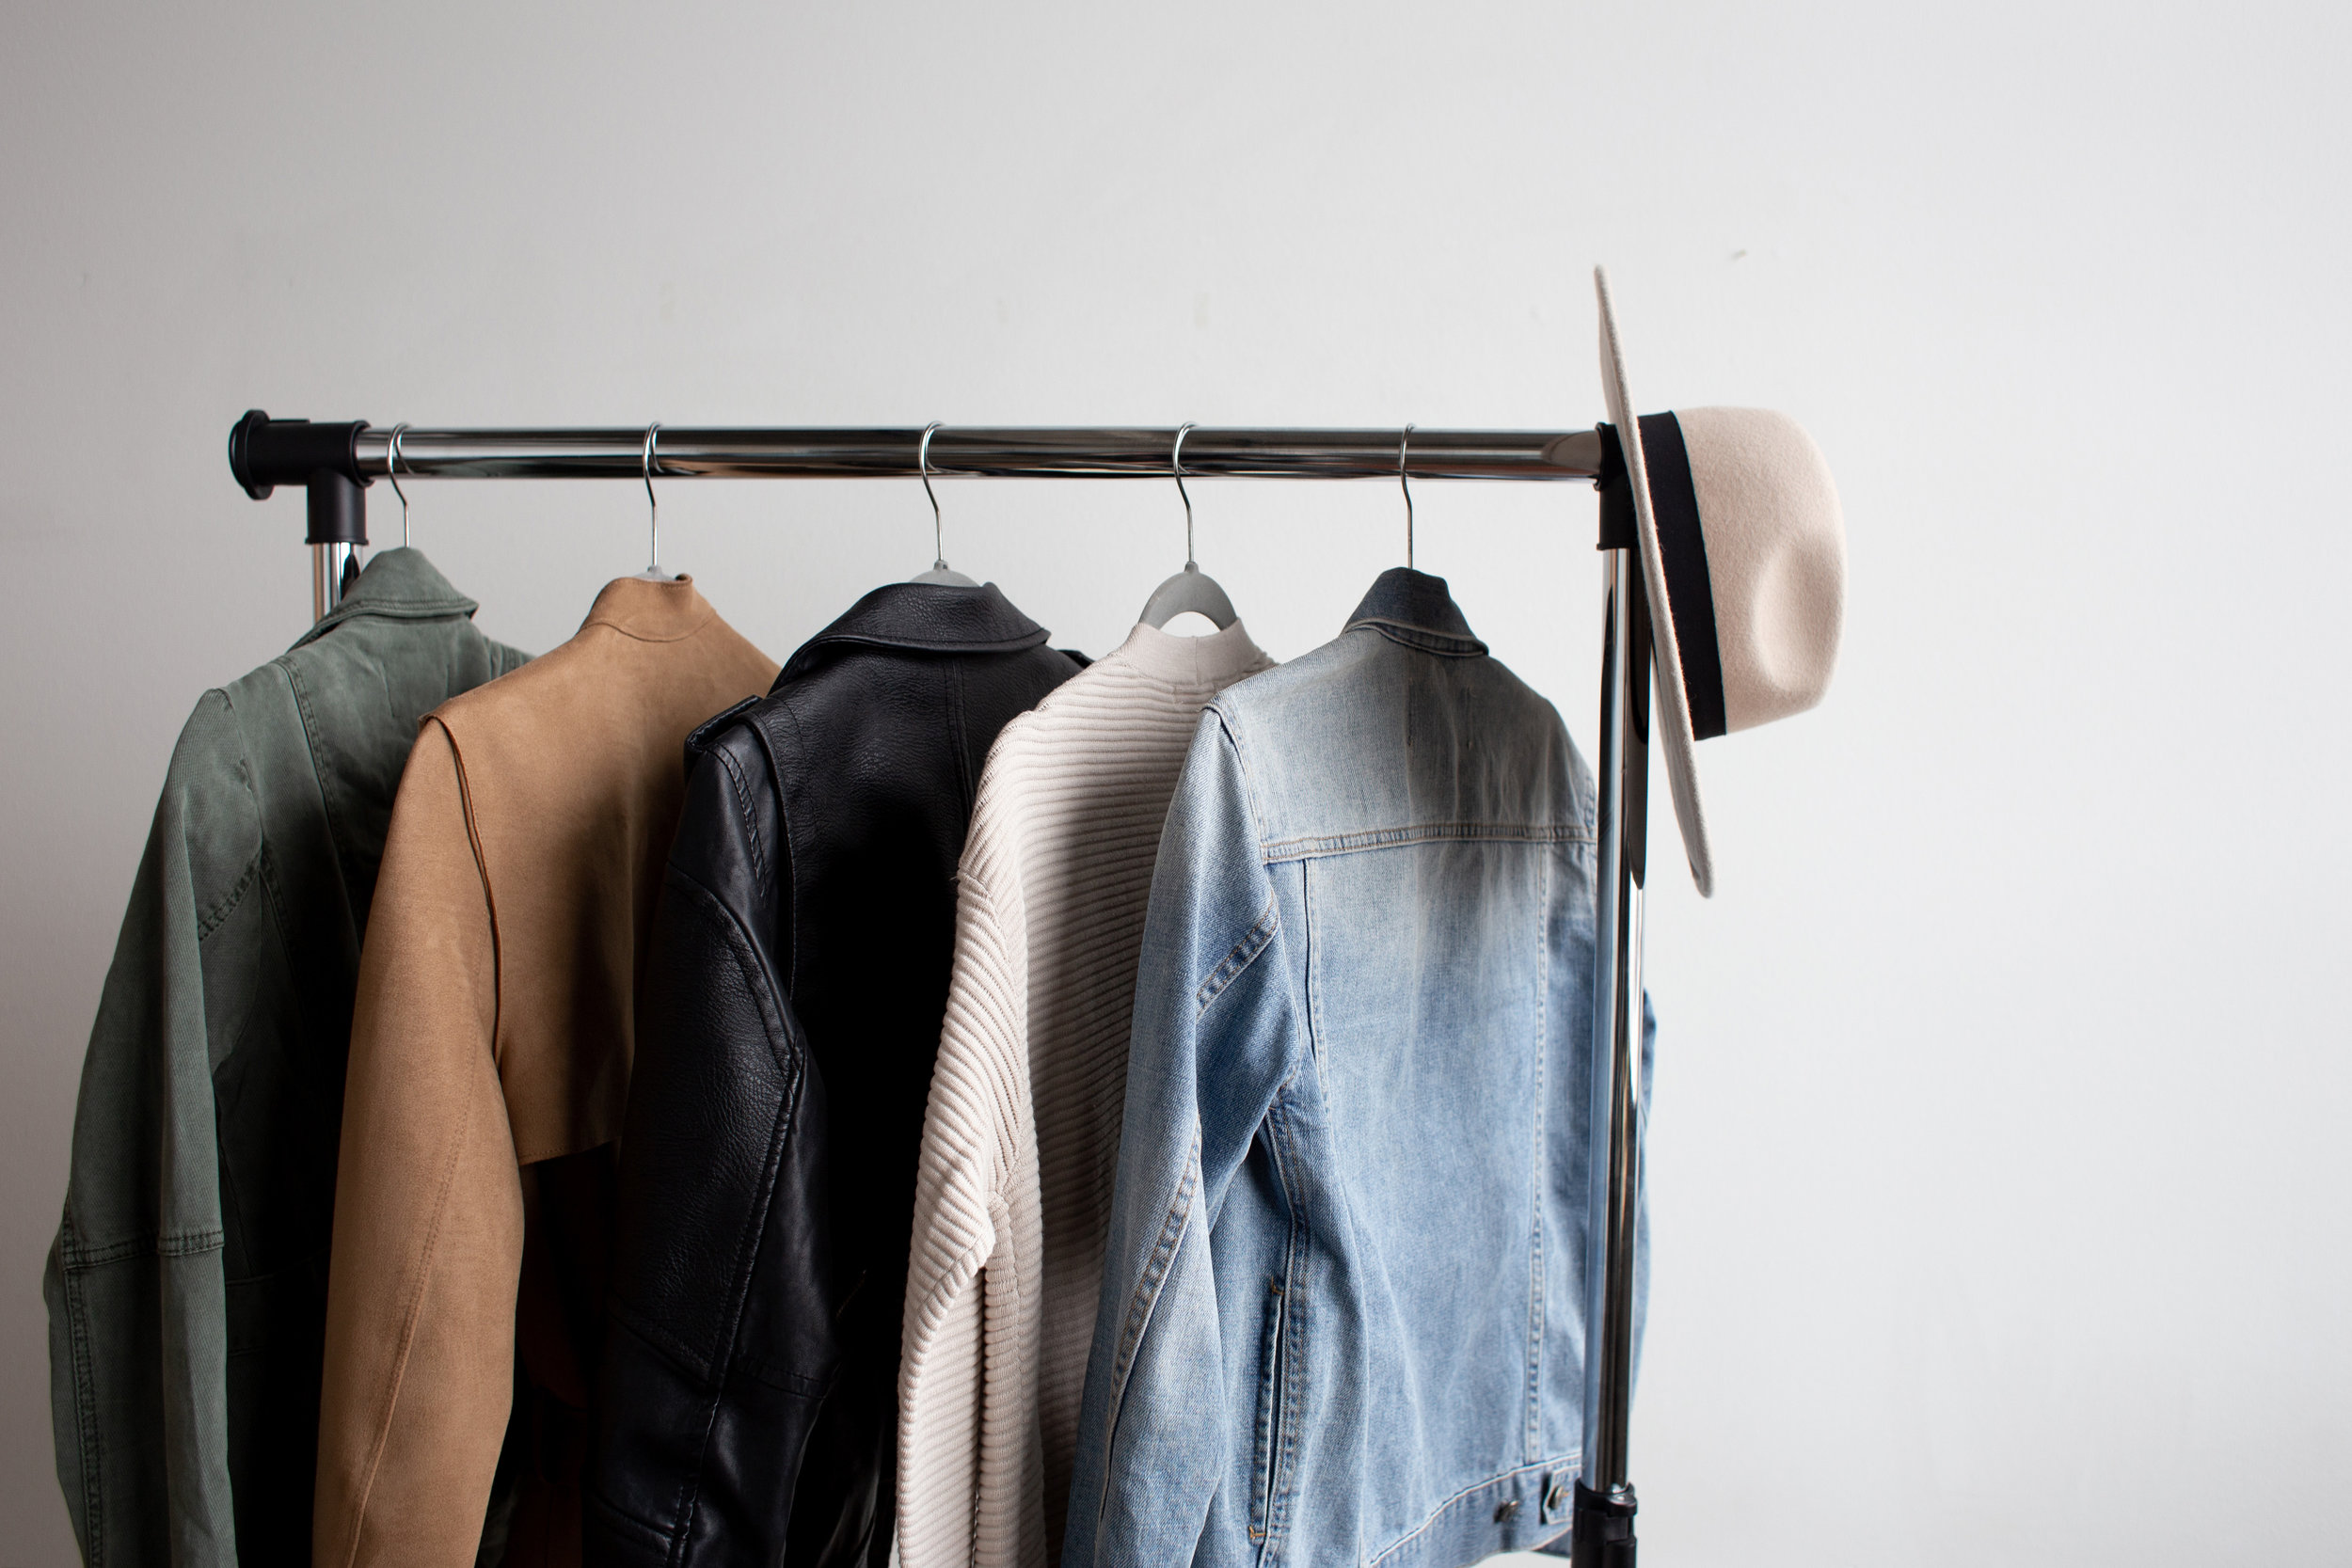 threads - The newest collaborations, the best celebrity drops, and all the trends (or long-lasting classics) to take your wardrobe game to the next level.